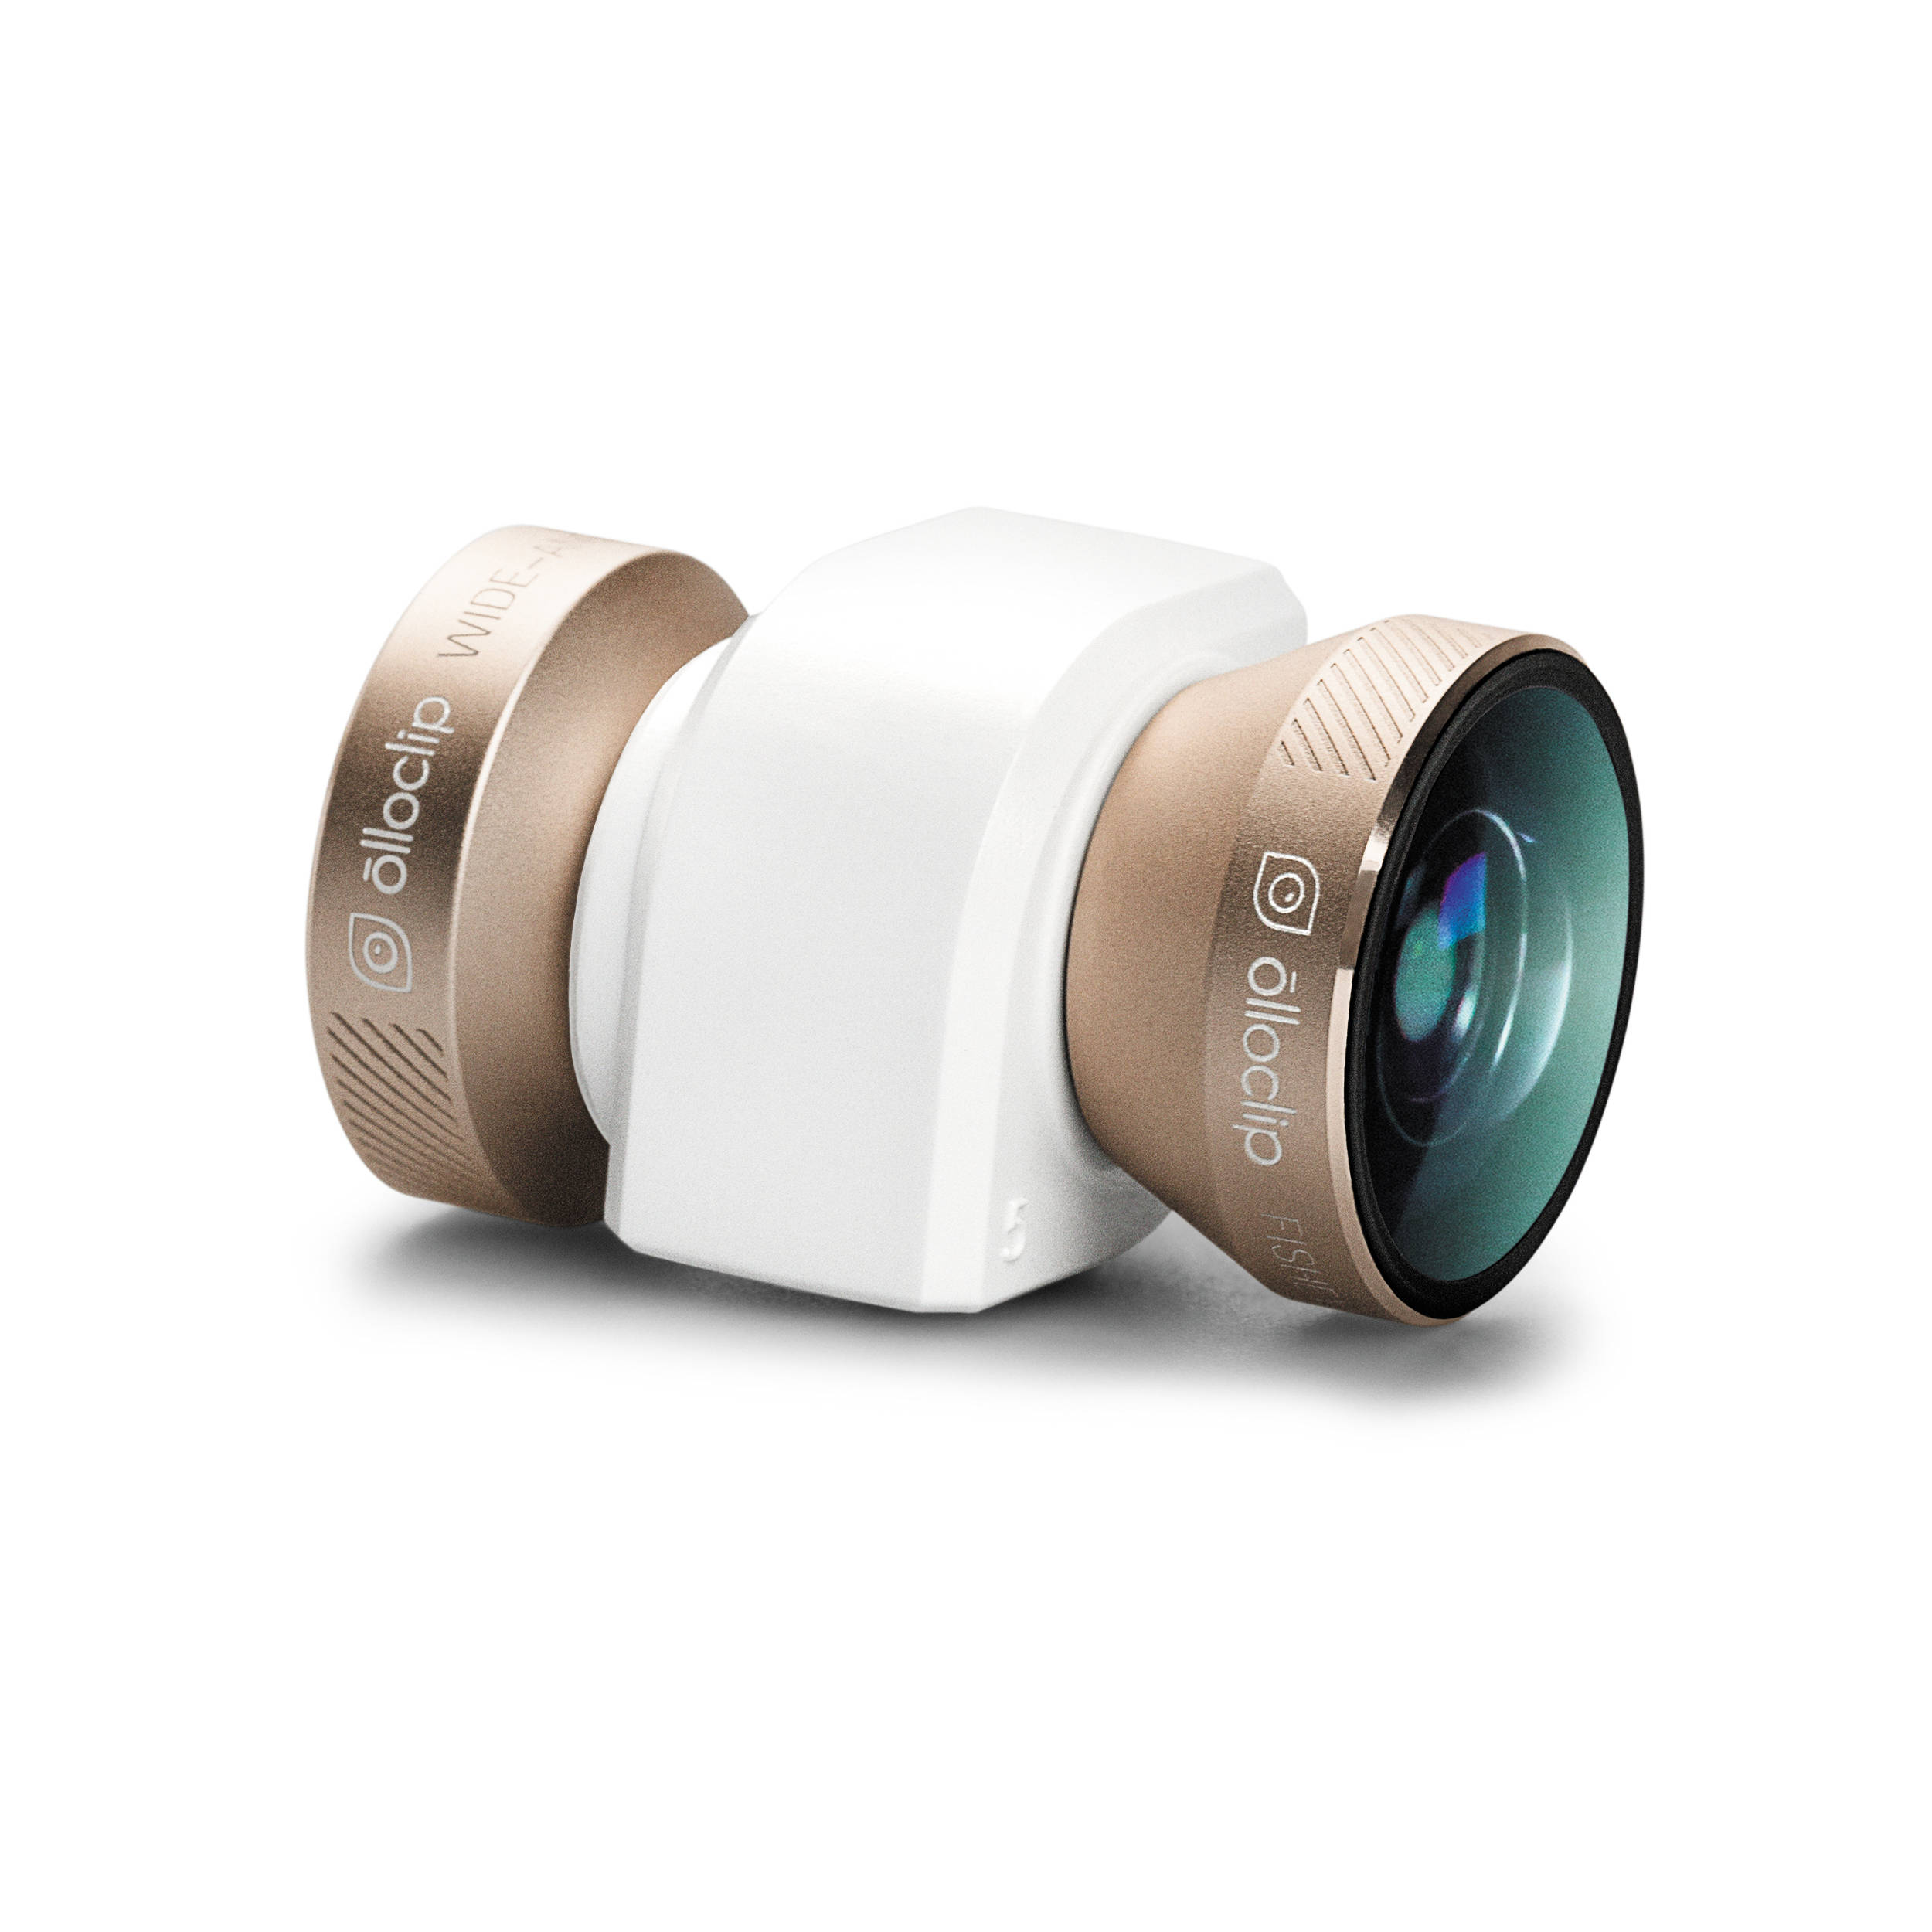 olloclip iphone 5 olloclip 4 in 1 photo lens for iphone 5 5s se oceu iph5 12734